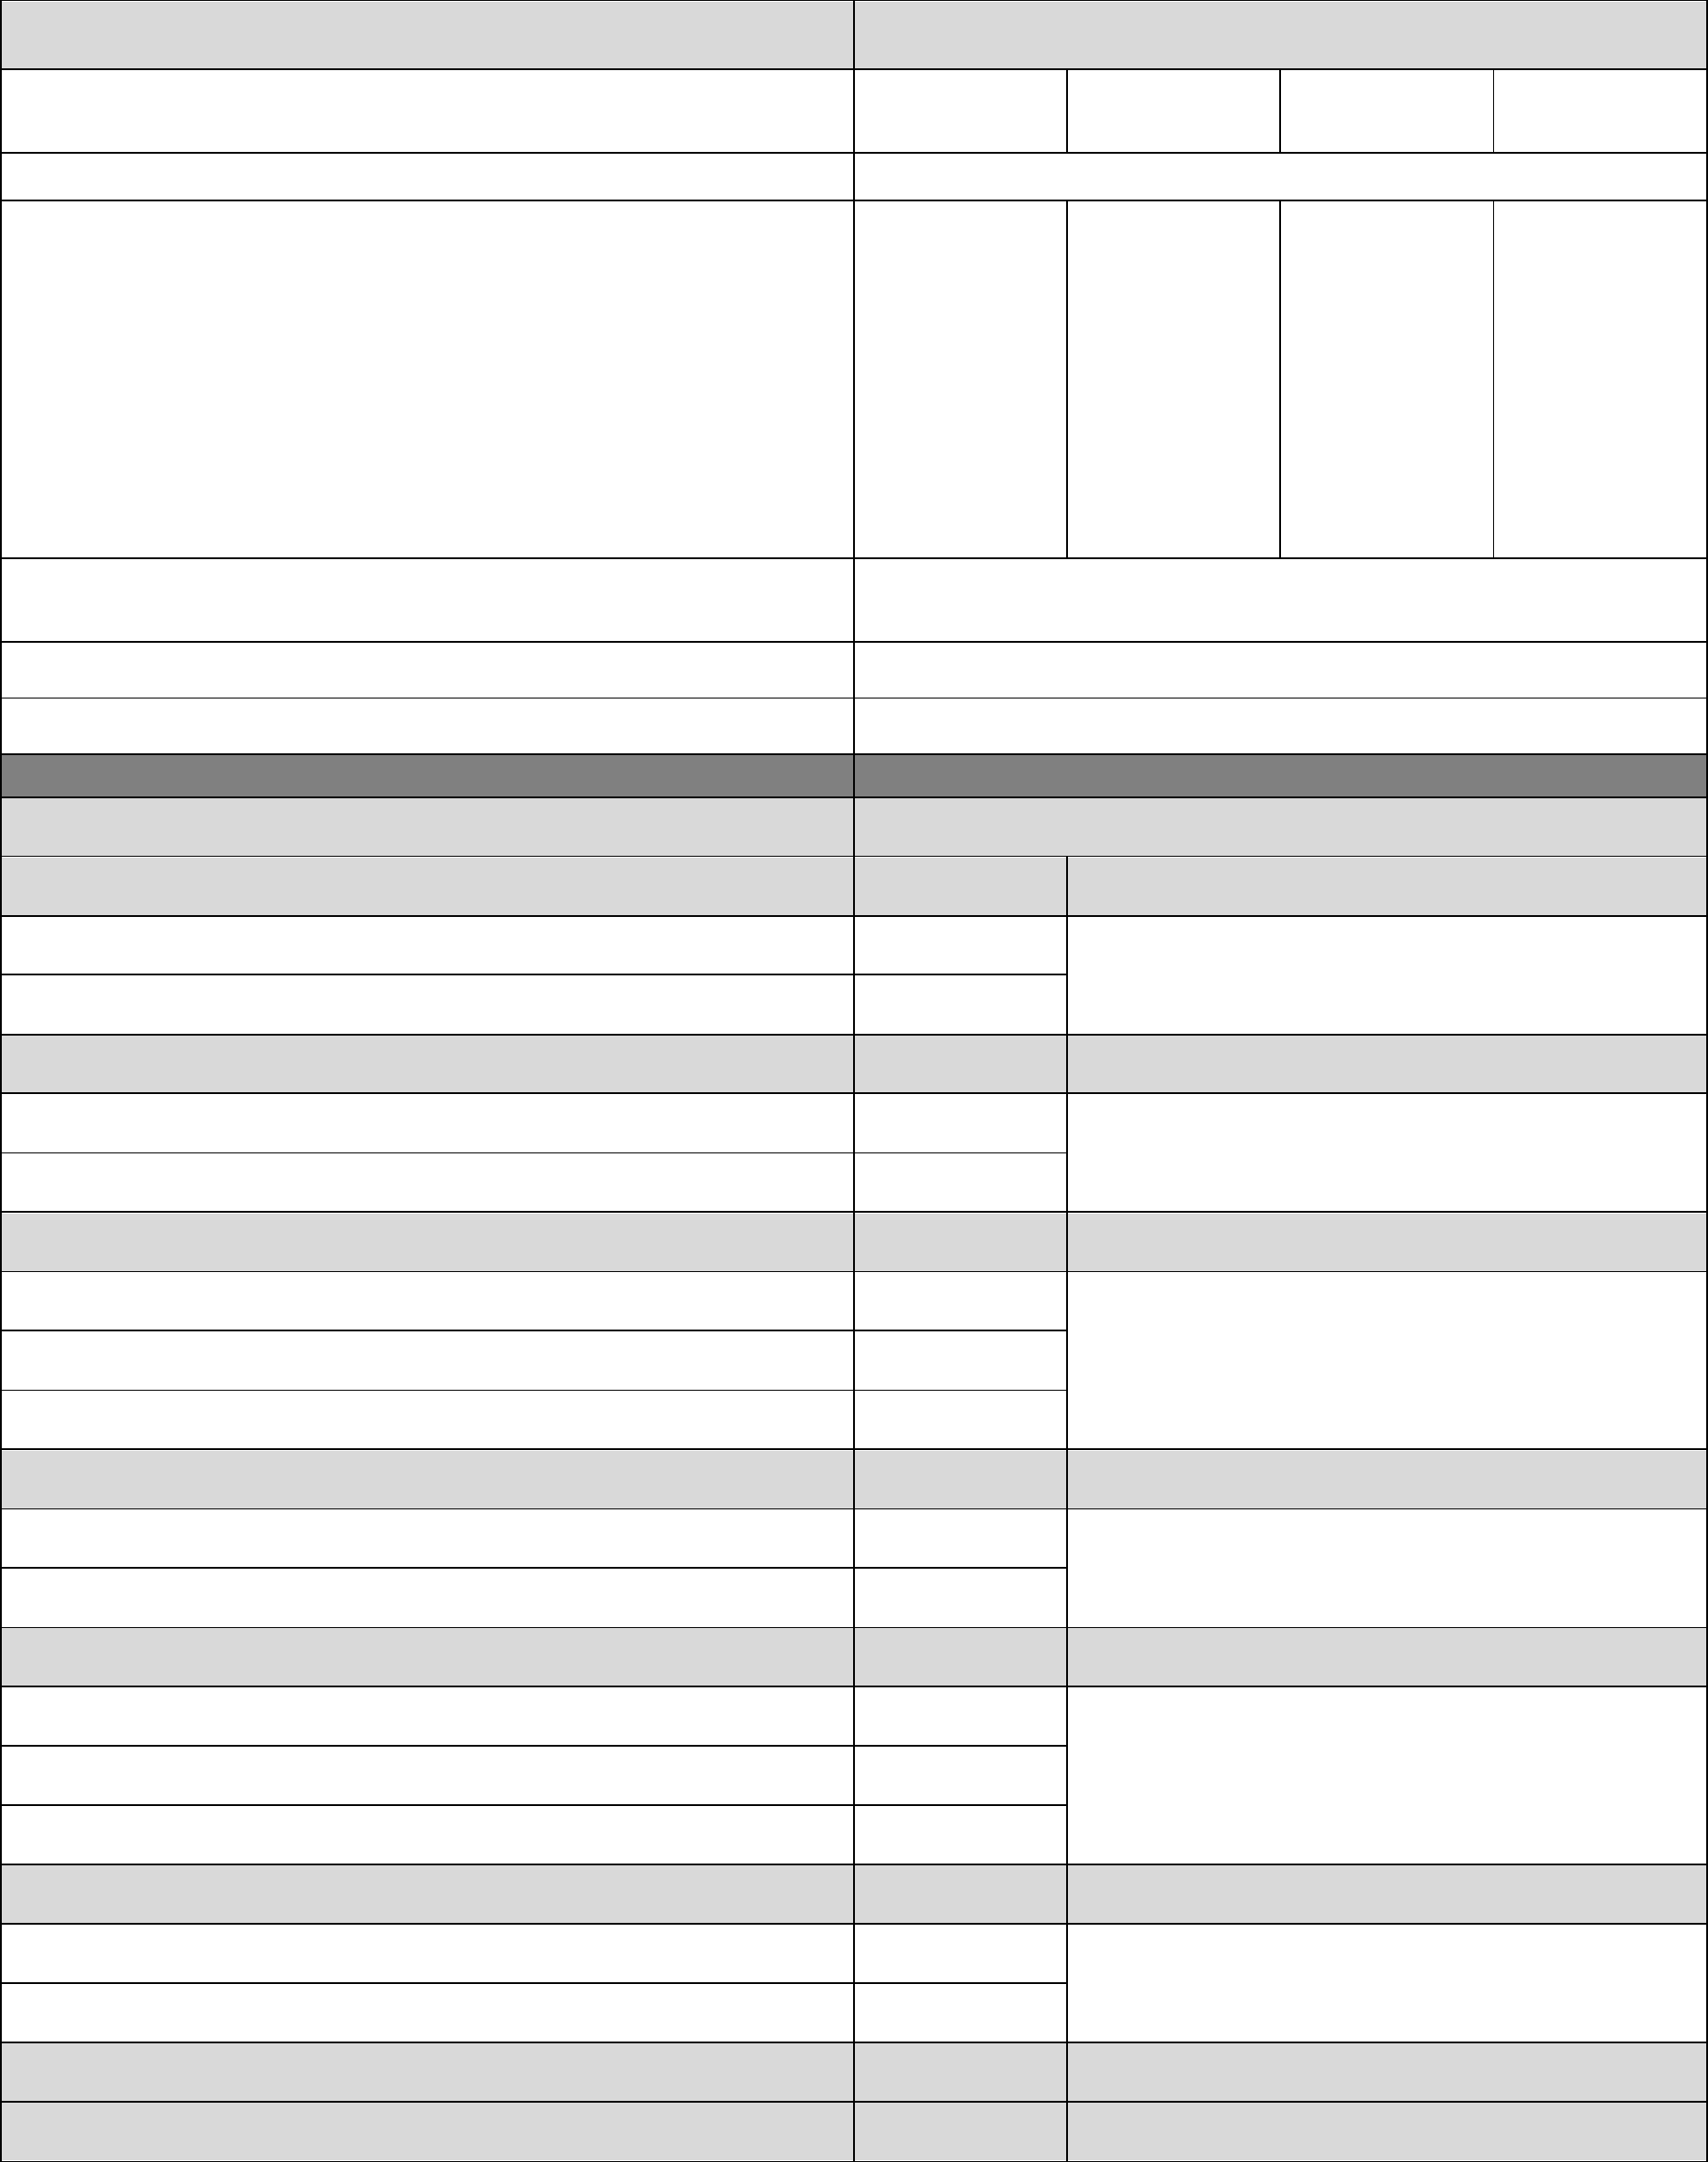 Line item budget form arkansas free download for Fte calculation template